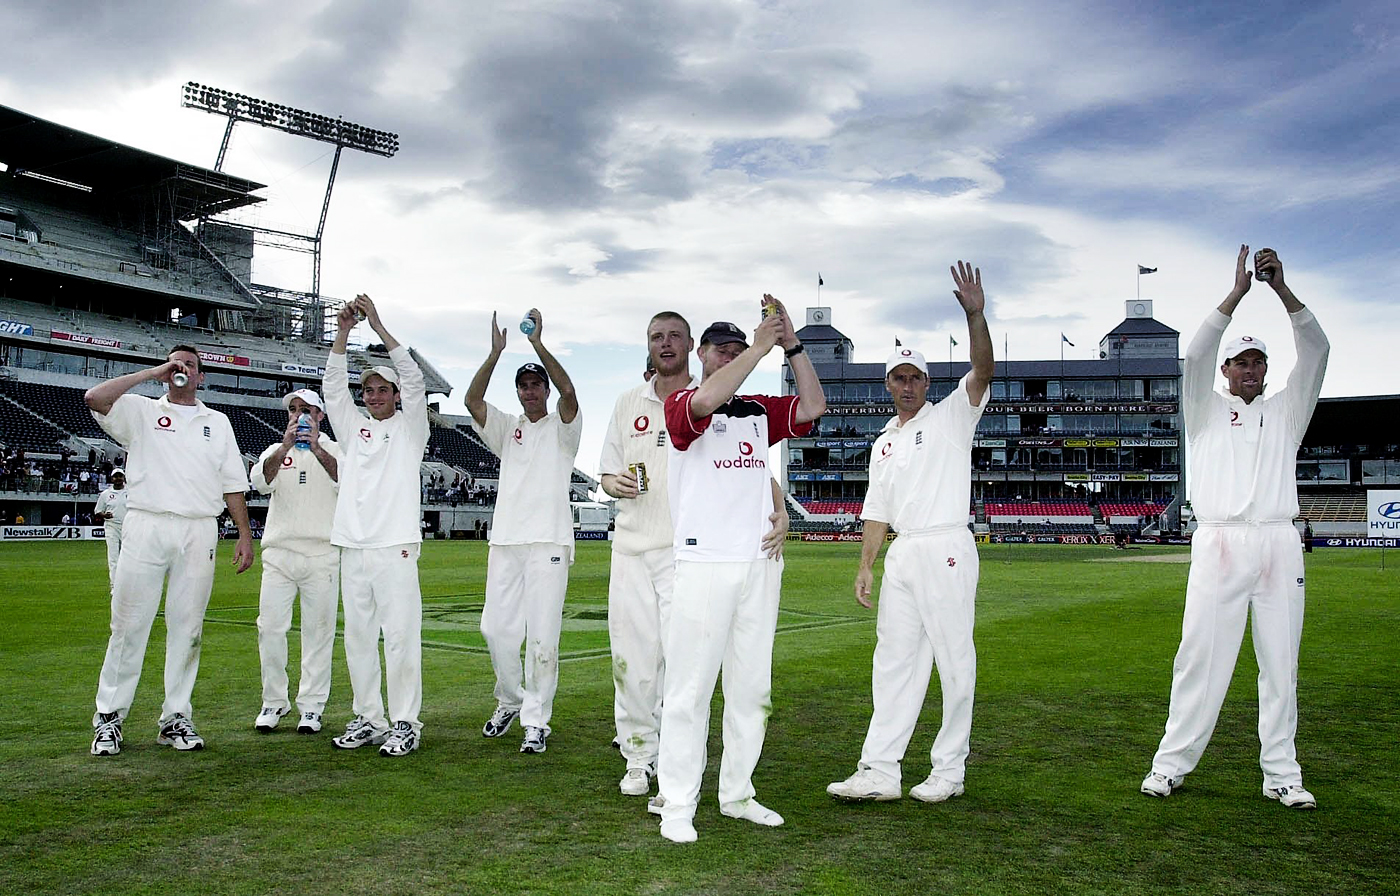 Relieved England players acknowledge the spectators after winning the Test by 98 runs